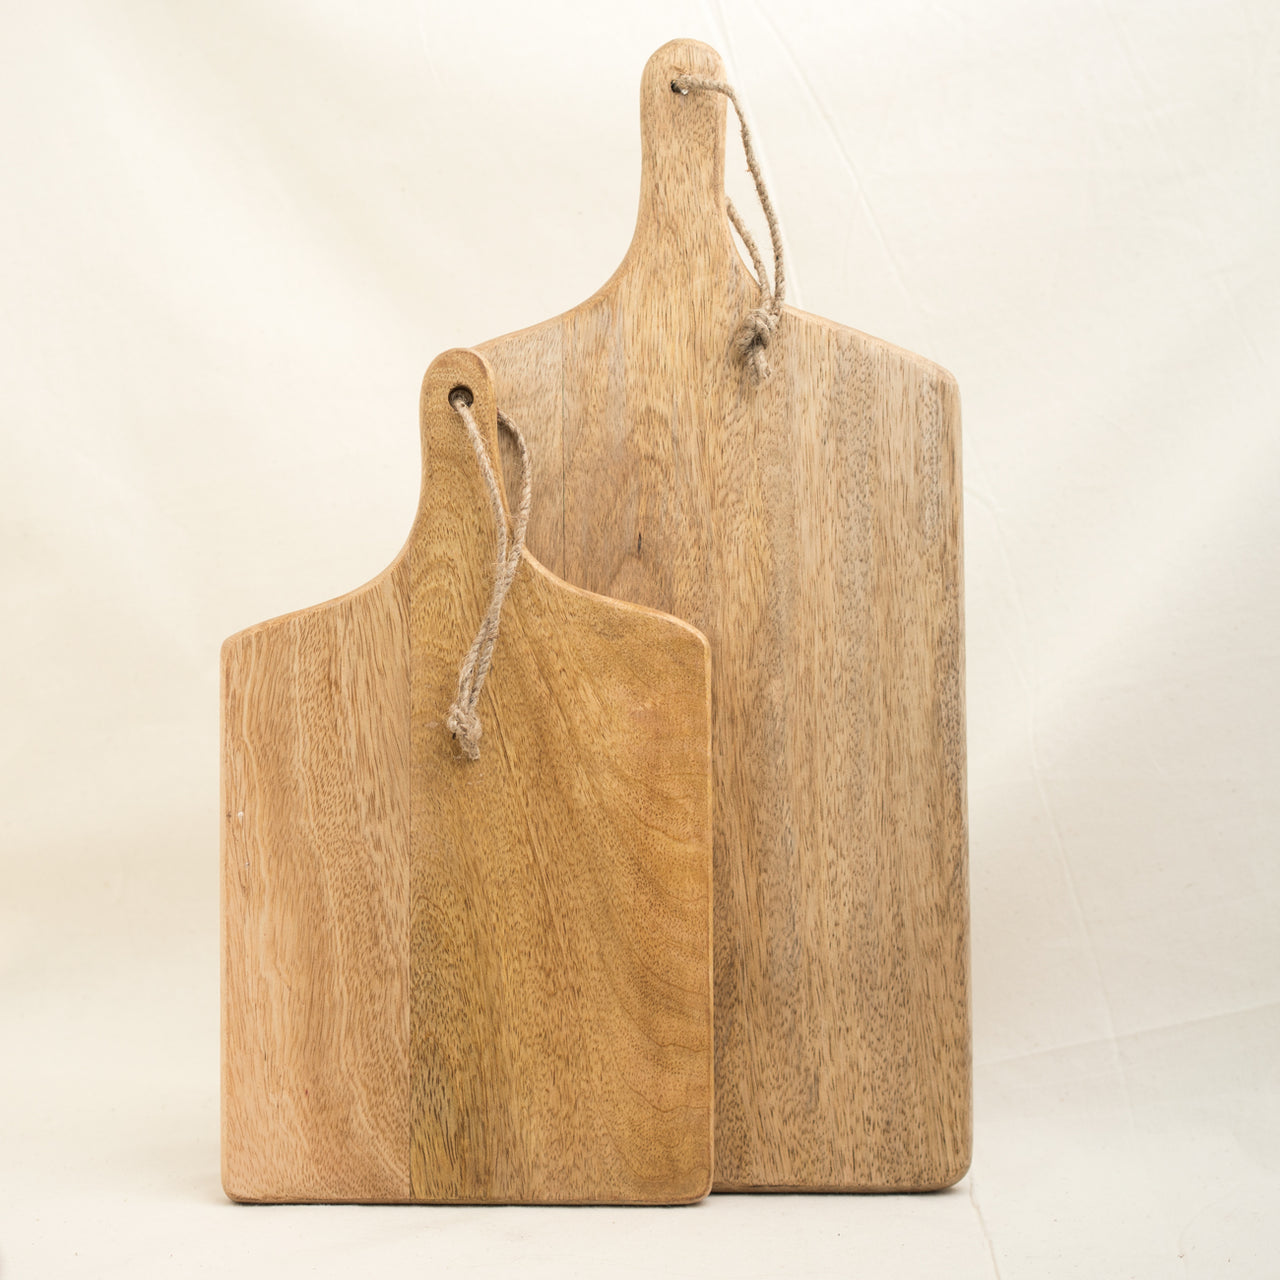 Mango Wood Board - Various Sizes